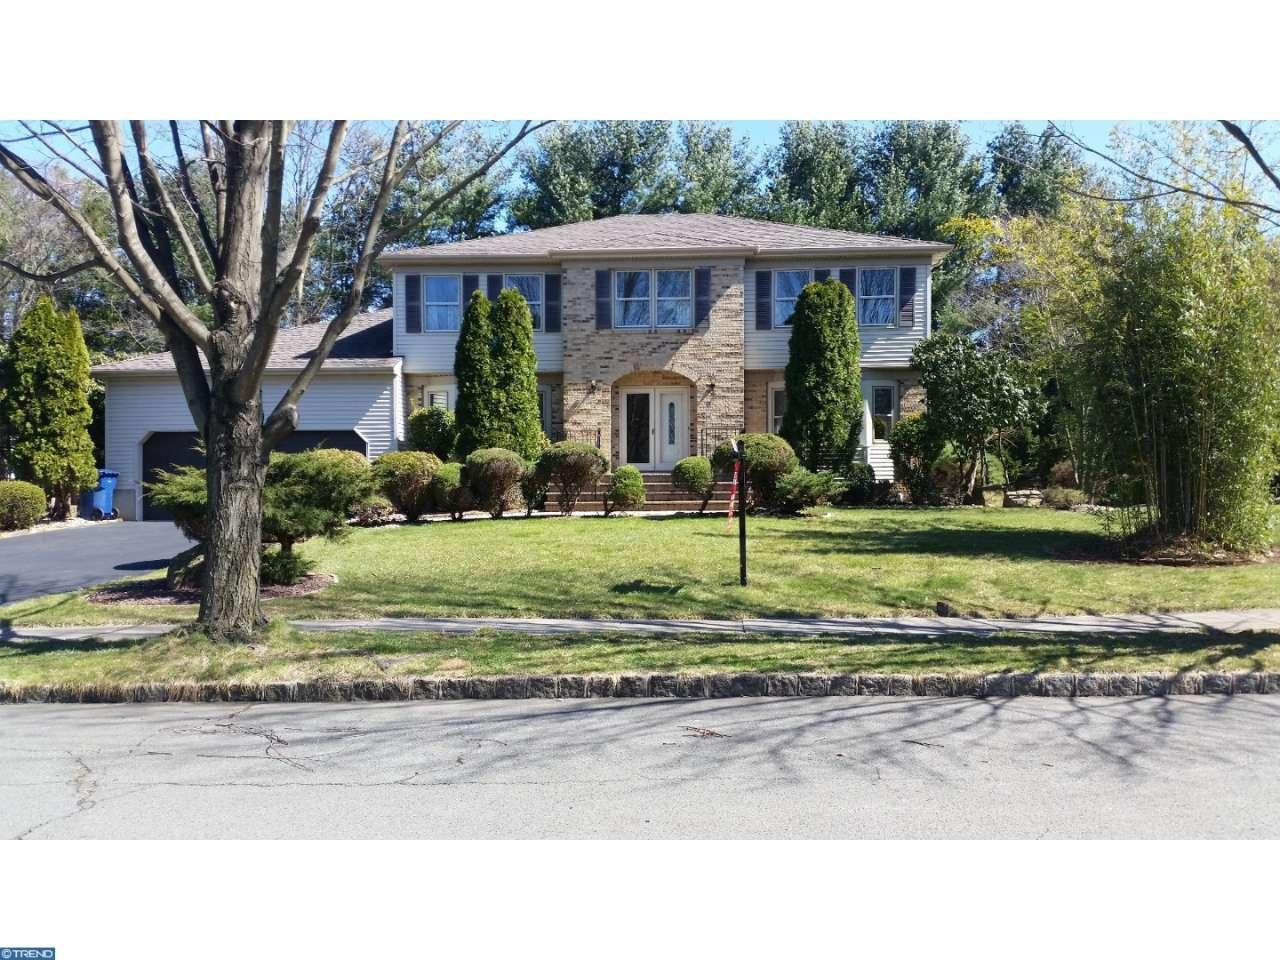 16 glenbrook ct lawrenceville nj 08648 mls 6952534 for Mercedes benz of princeton lawrence township nj